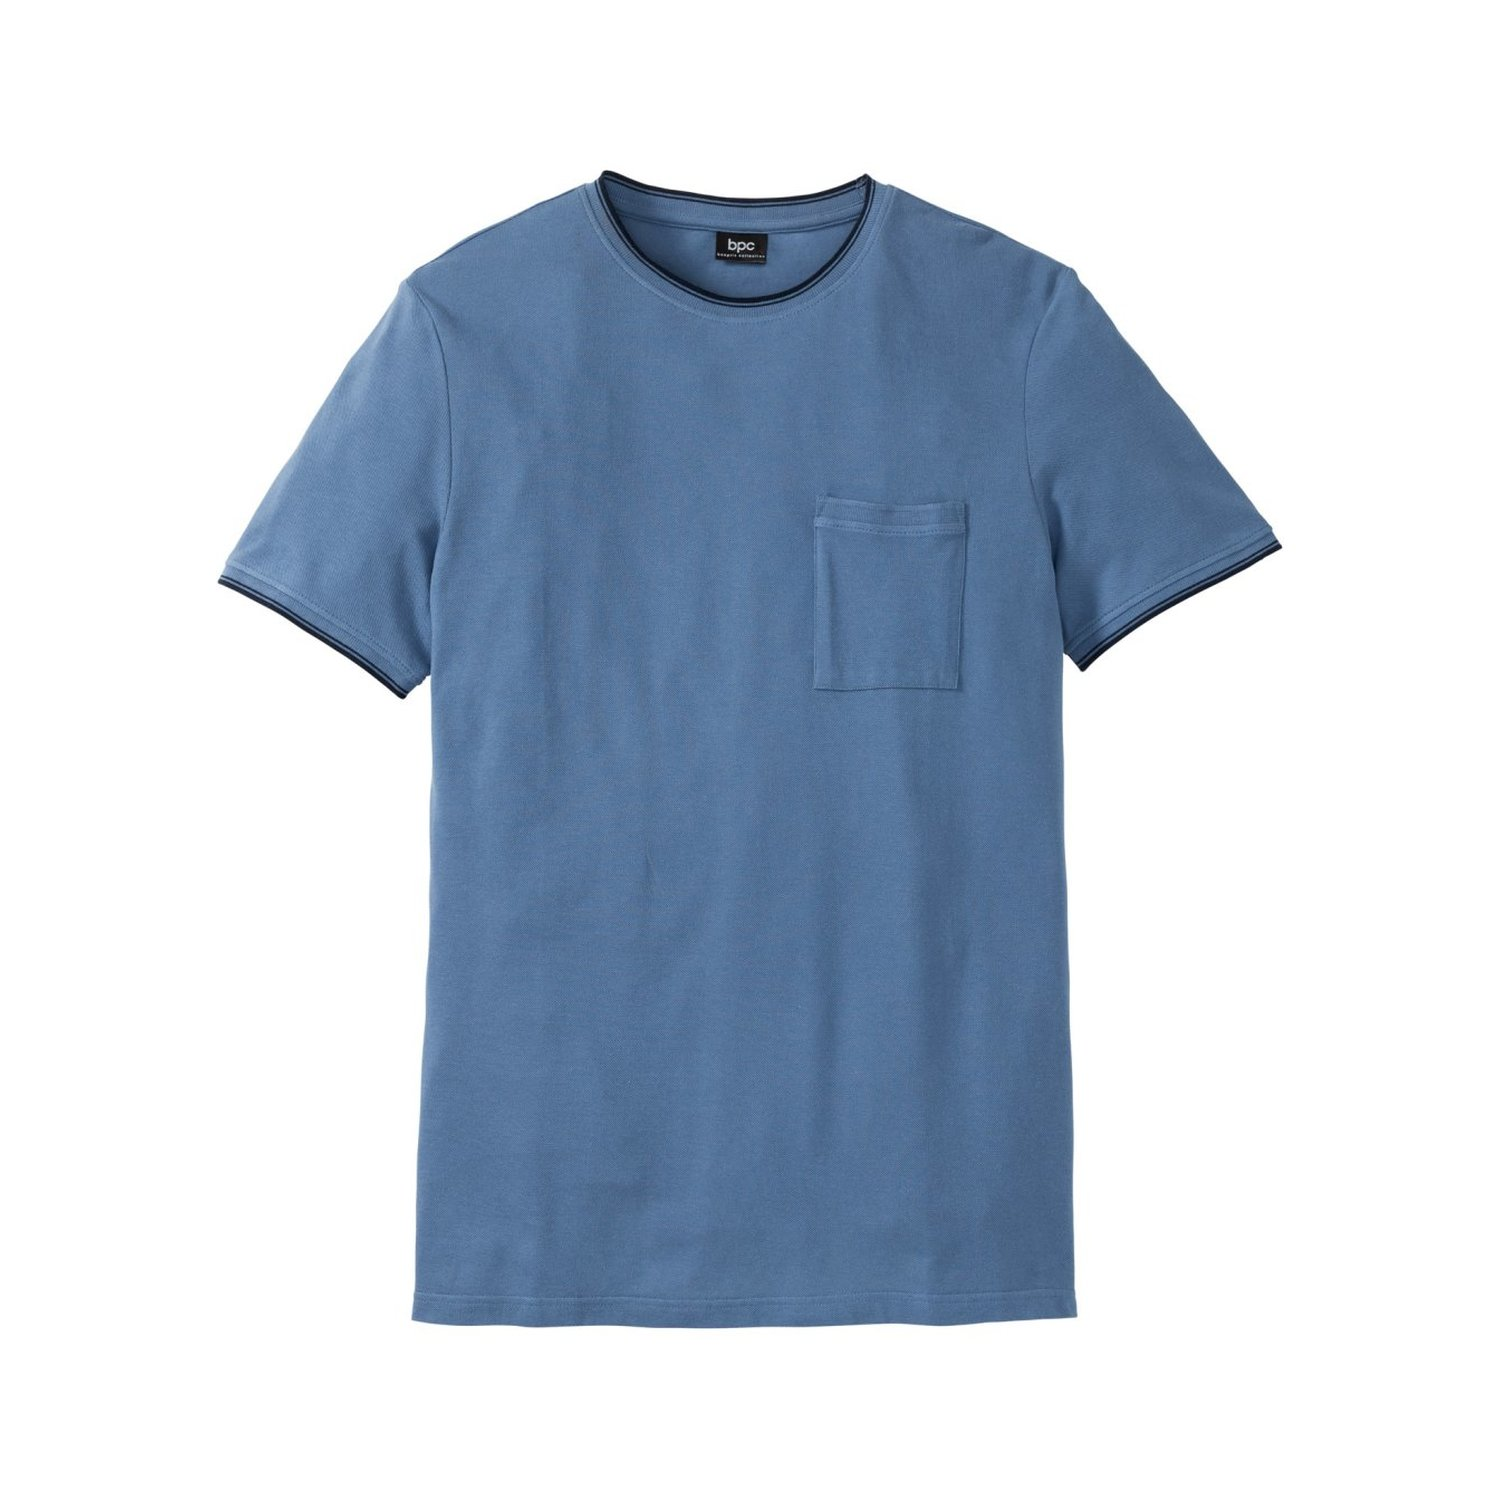 Herren Piqué-T-Shirt Regular Fit, in Blau